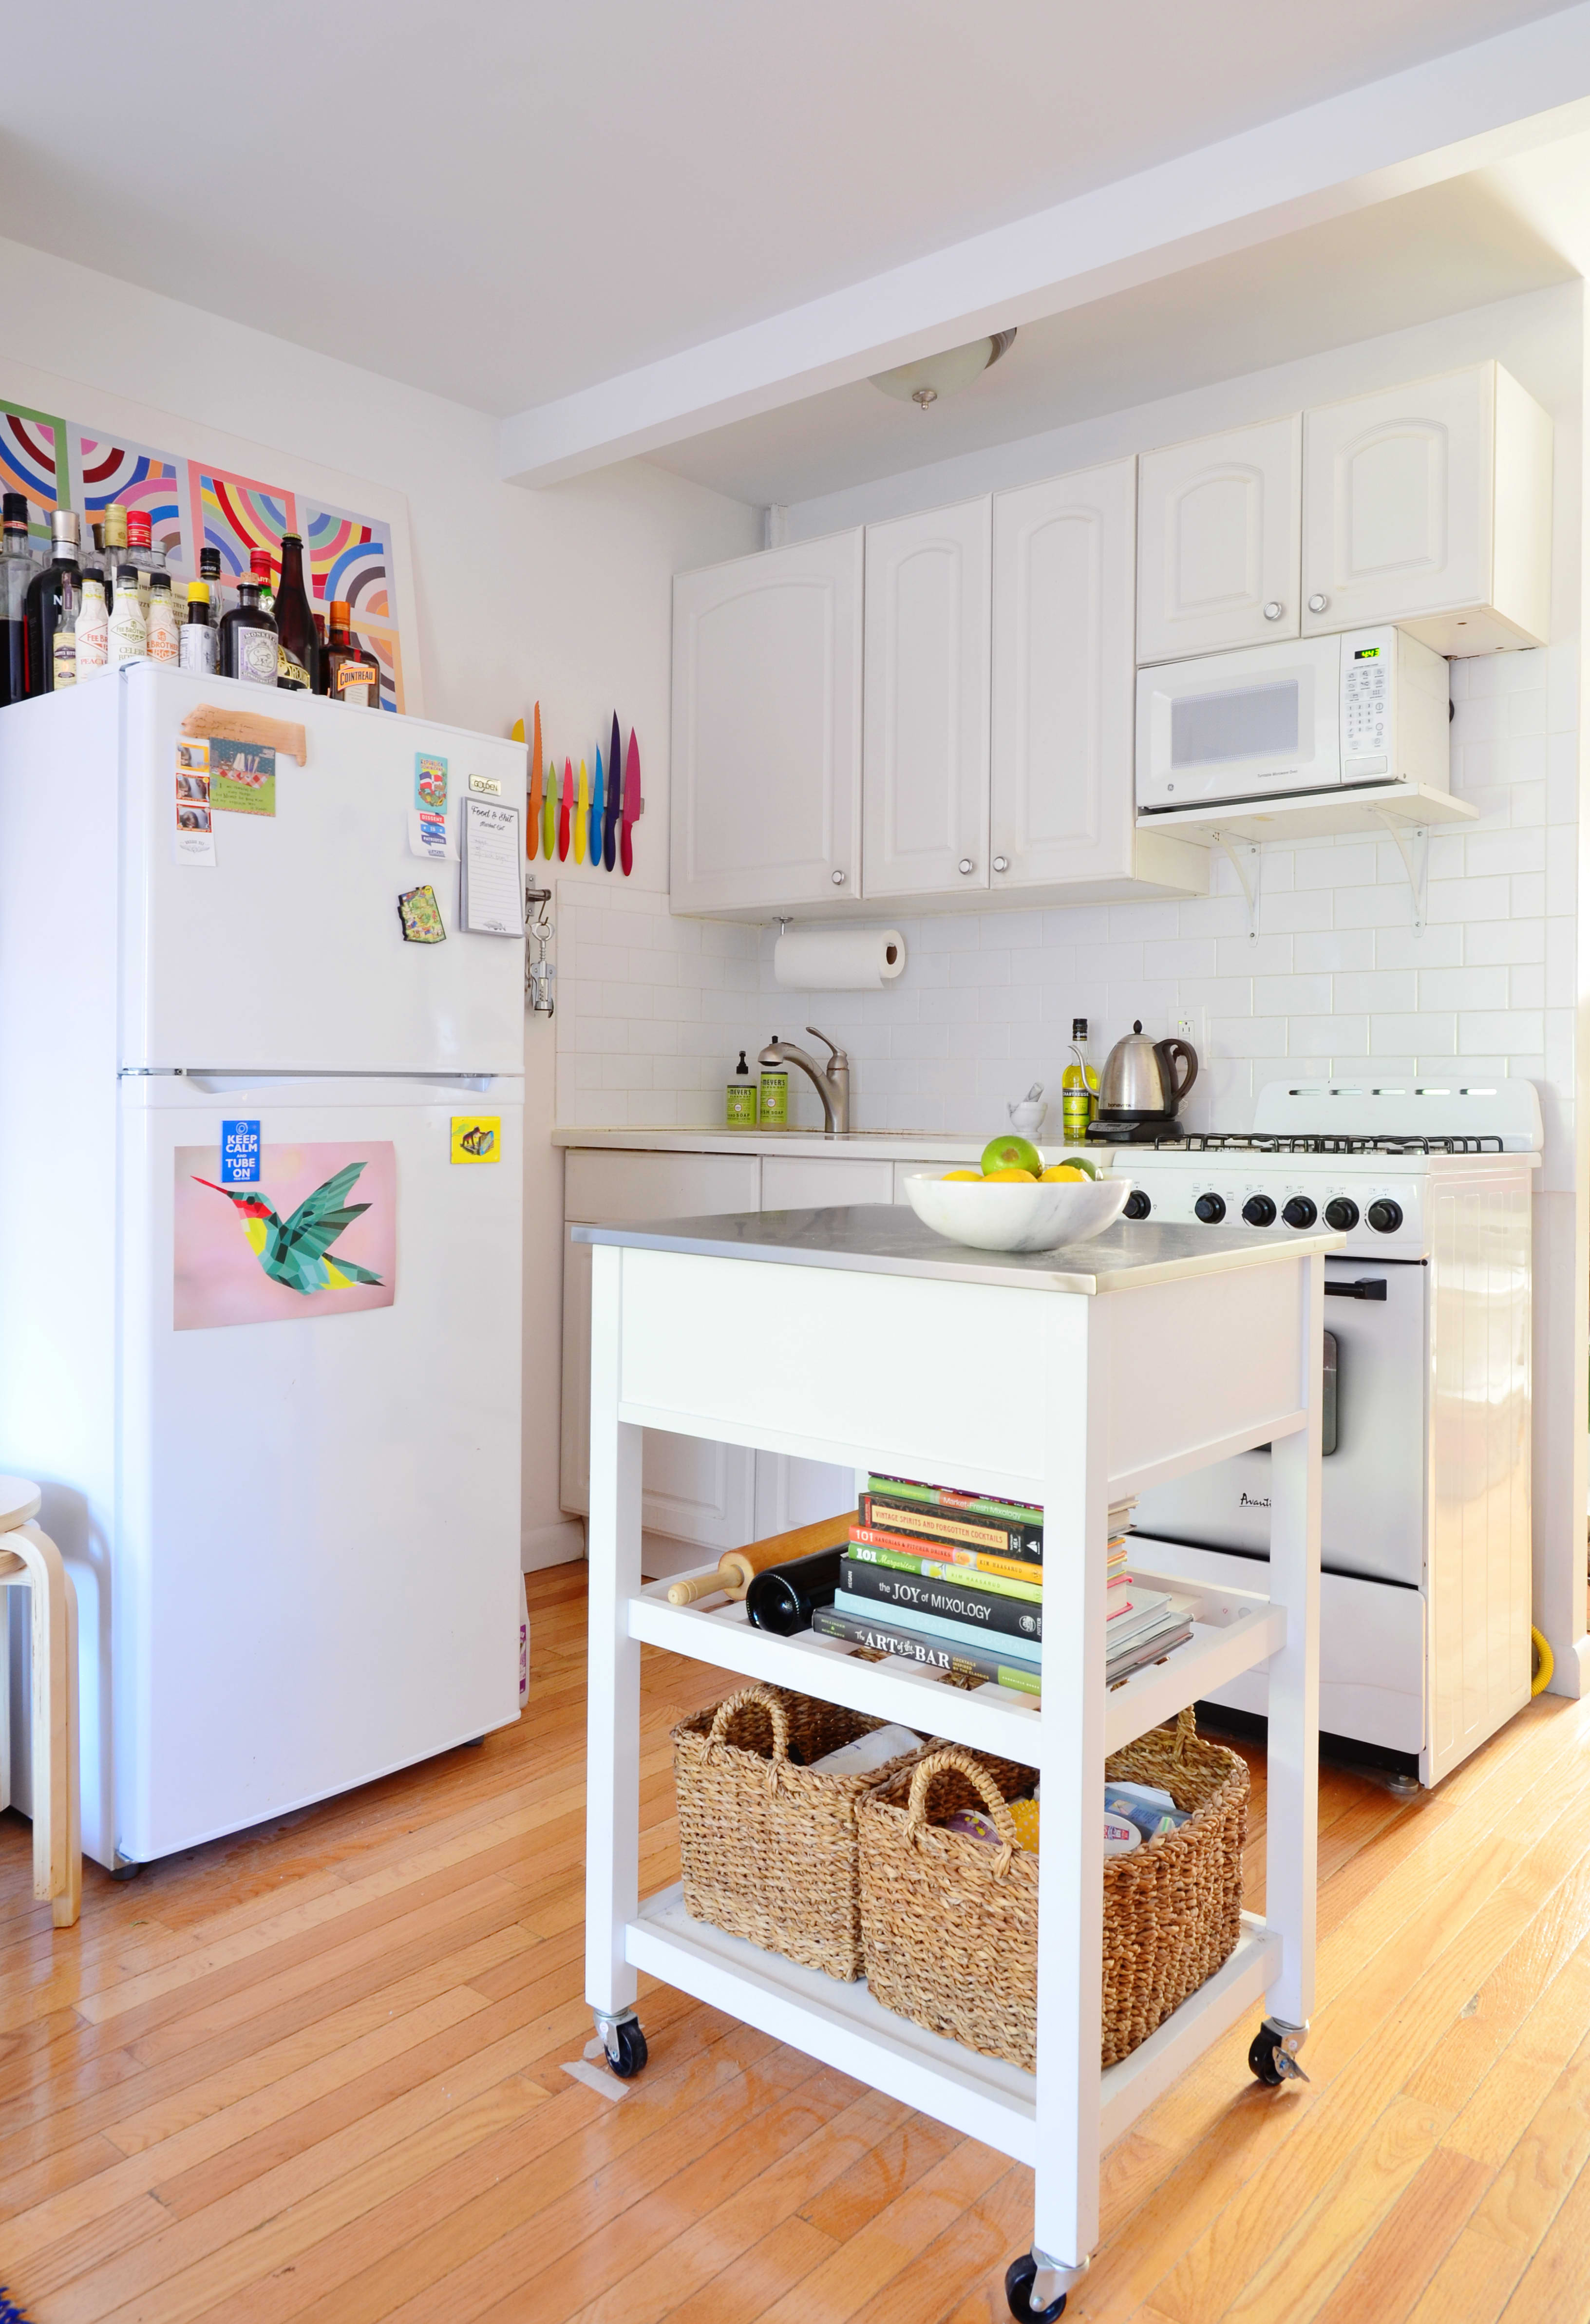 45 Small Kitchen Ideas Pictures Tips Solutions Apartment Therapy